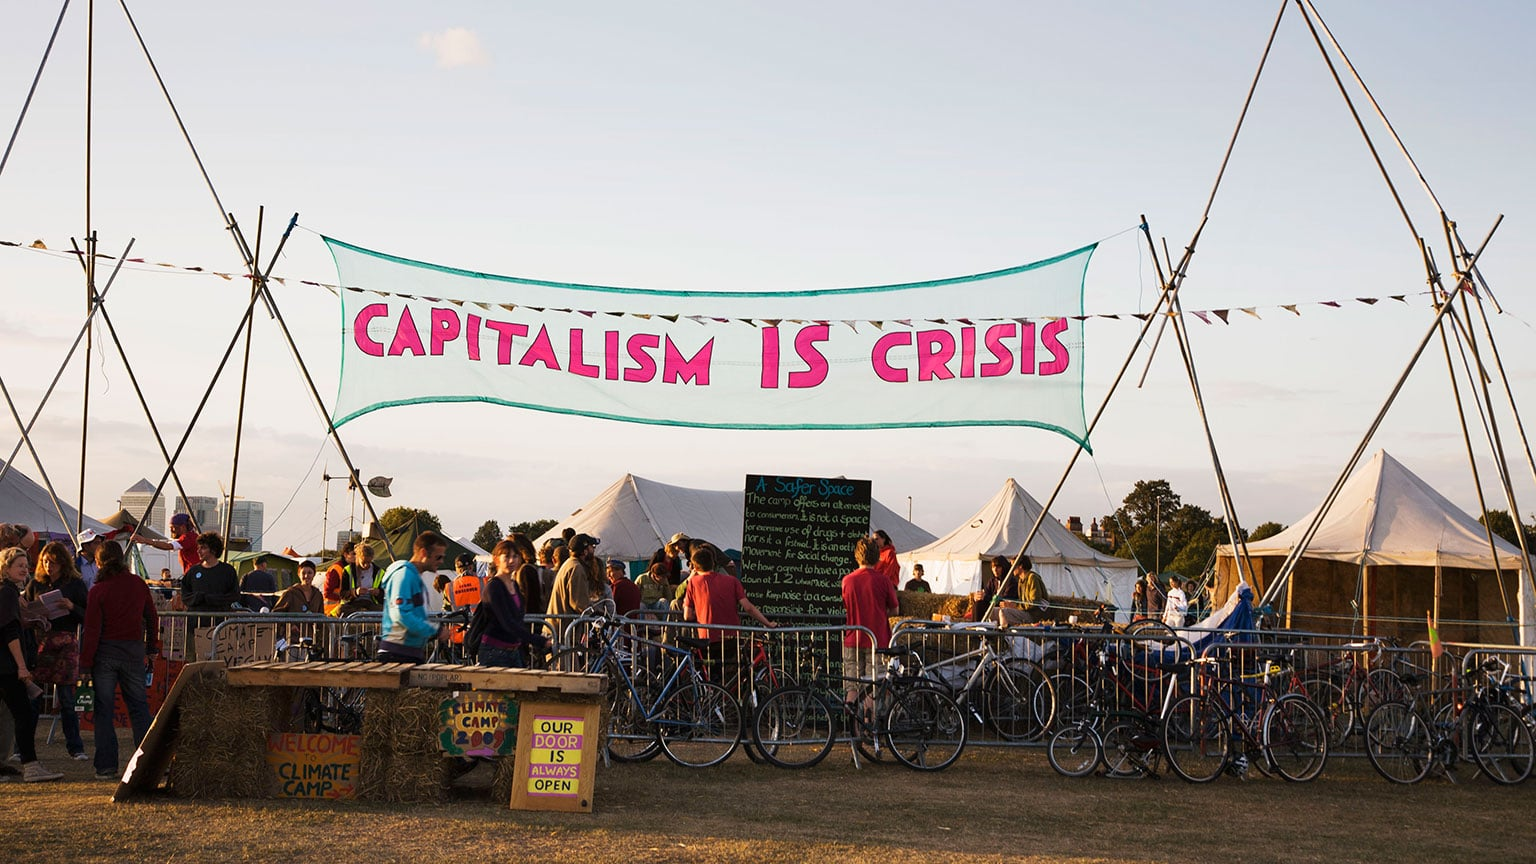 Occupy London Stock Exchange, Capitalism is Crisis banner, Used 2009-12